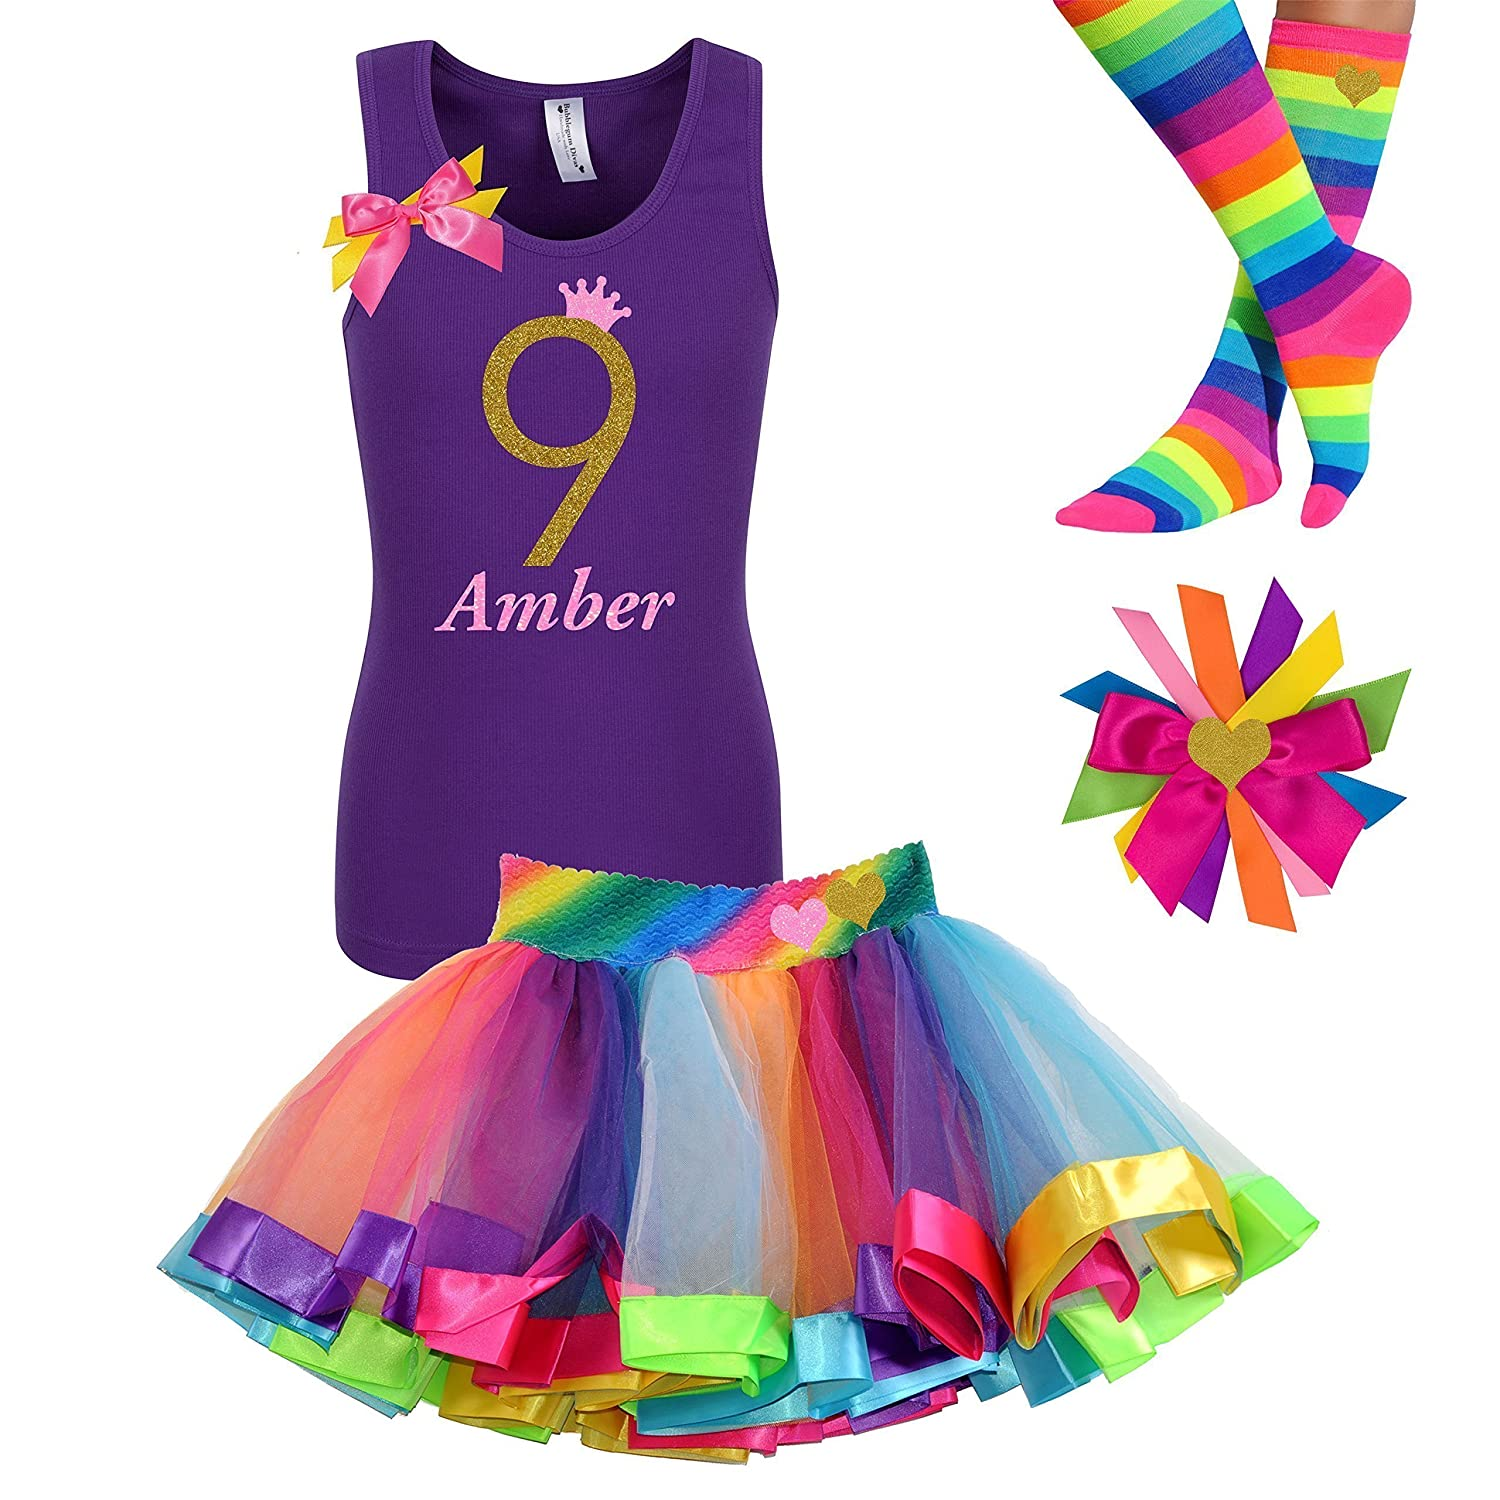 9th Birthday Shirt Rainbow Tutu Girls Party Outfit 4PC Gift Set Personalized Name Age 9